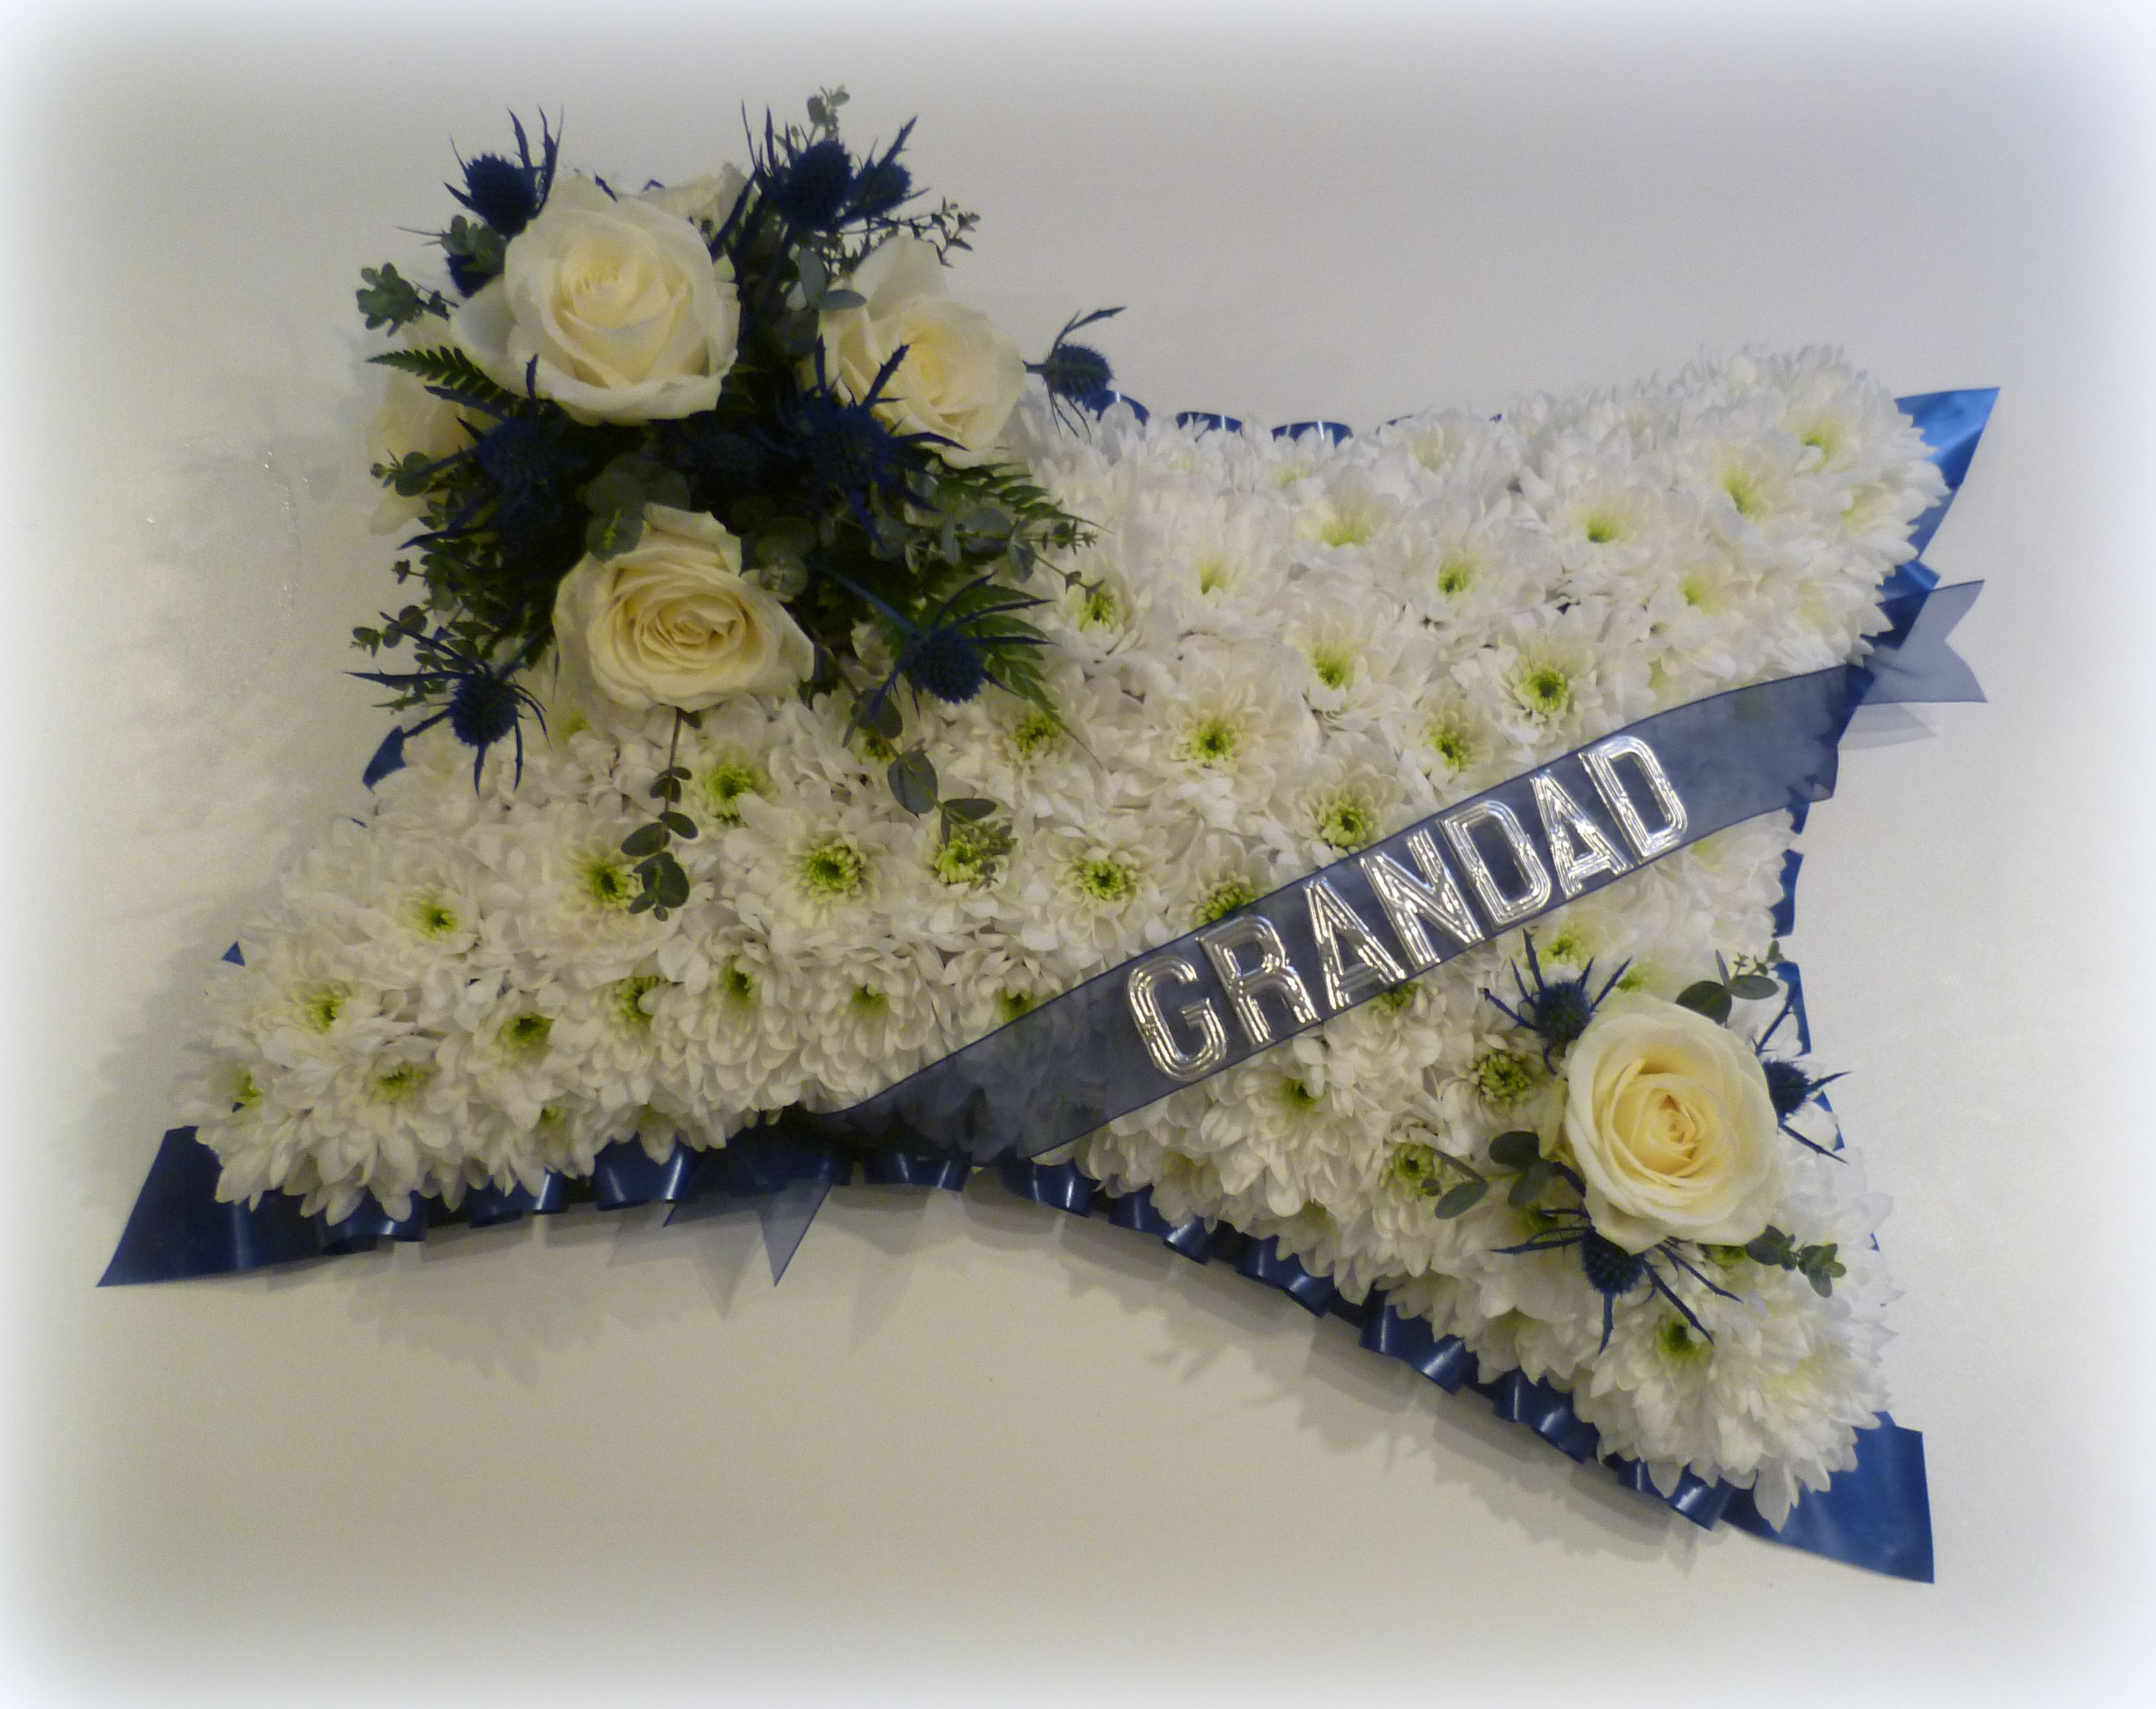 Based pillow floral funeral tribute with grandad wording houghton based pillow floral funeral tribute with grandad wording houghton regis florist izmirmasajfo Gallery